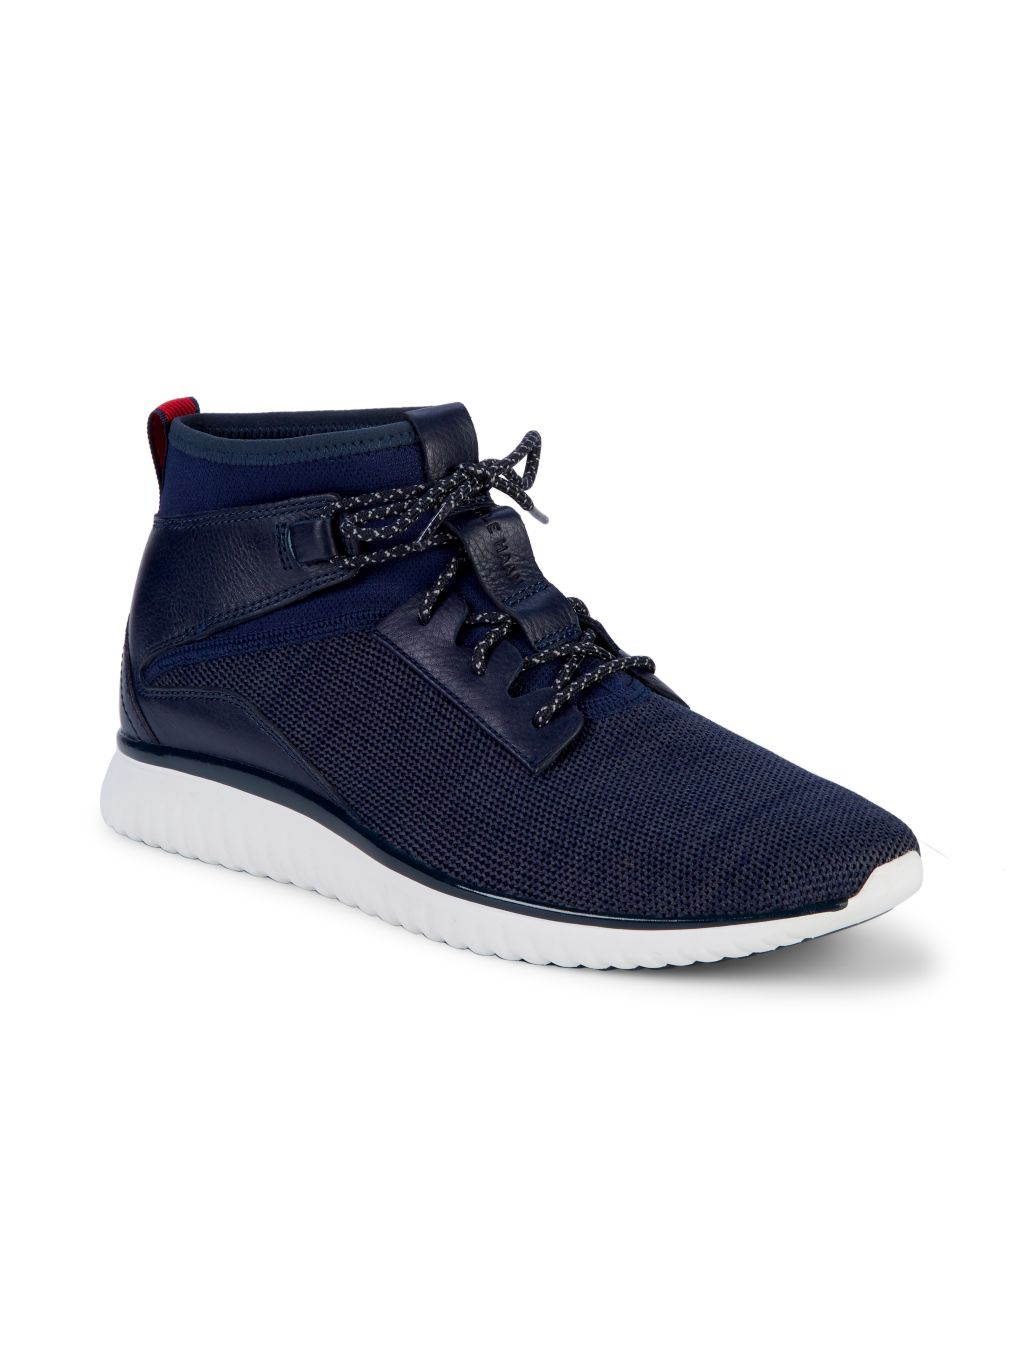 Cole Haan Grand Motion Textile Mid-Top Sneakers